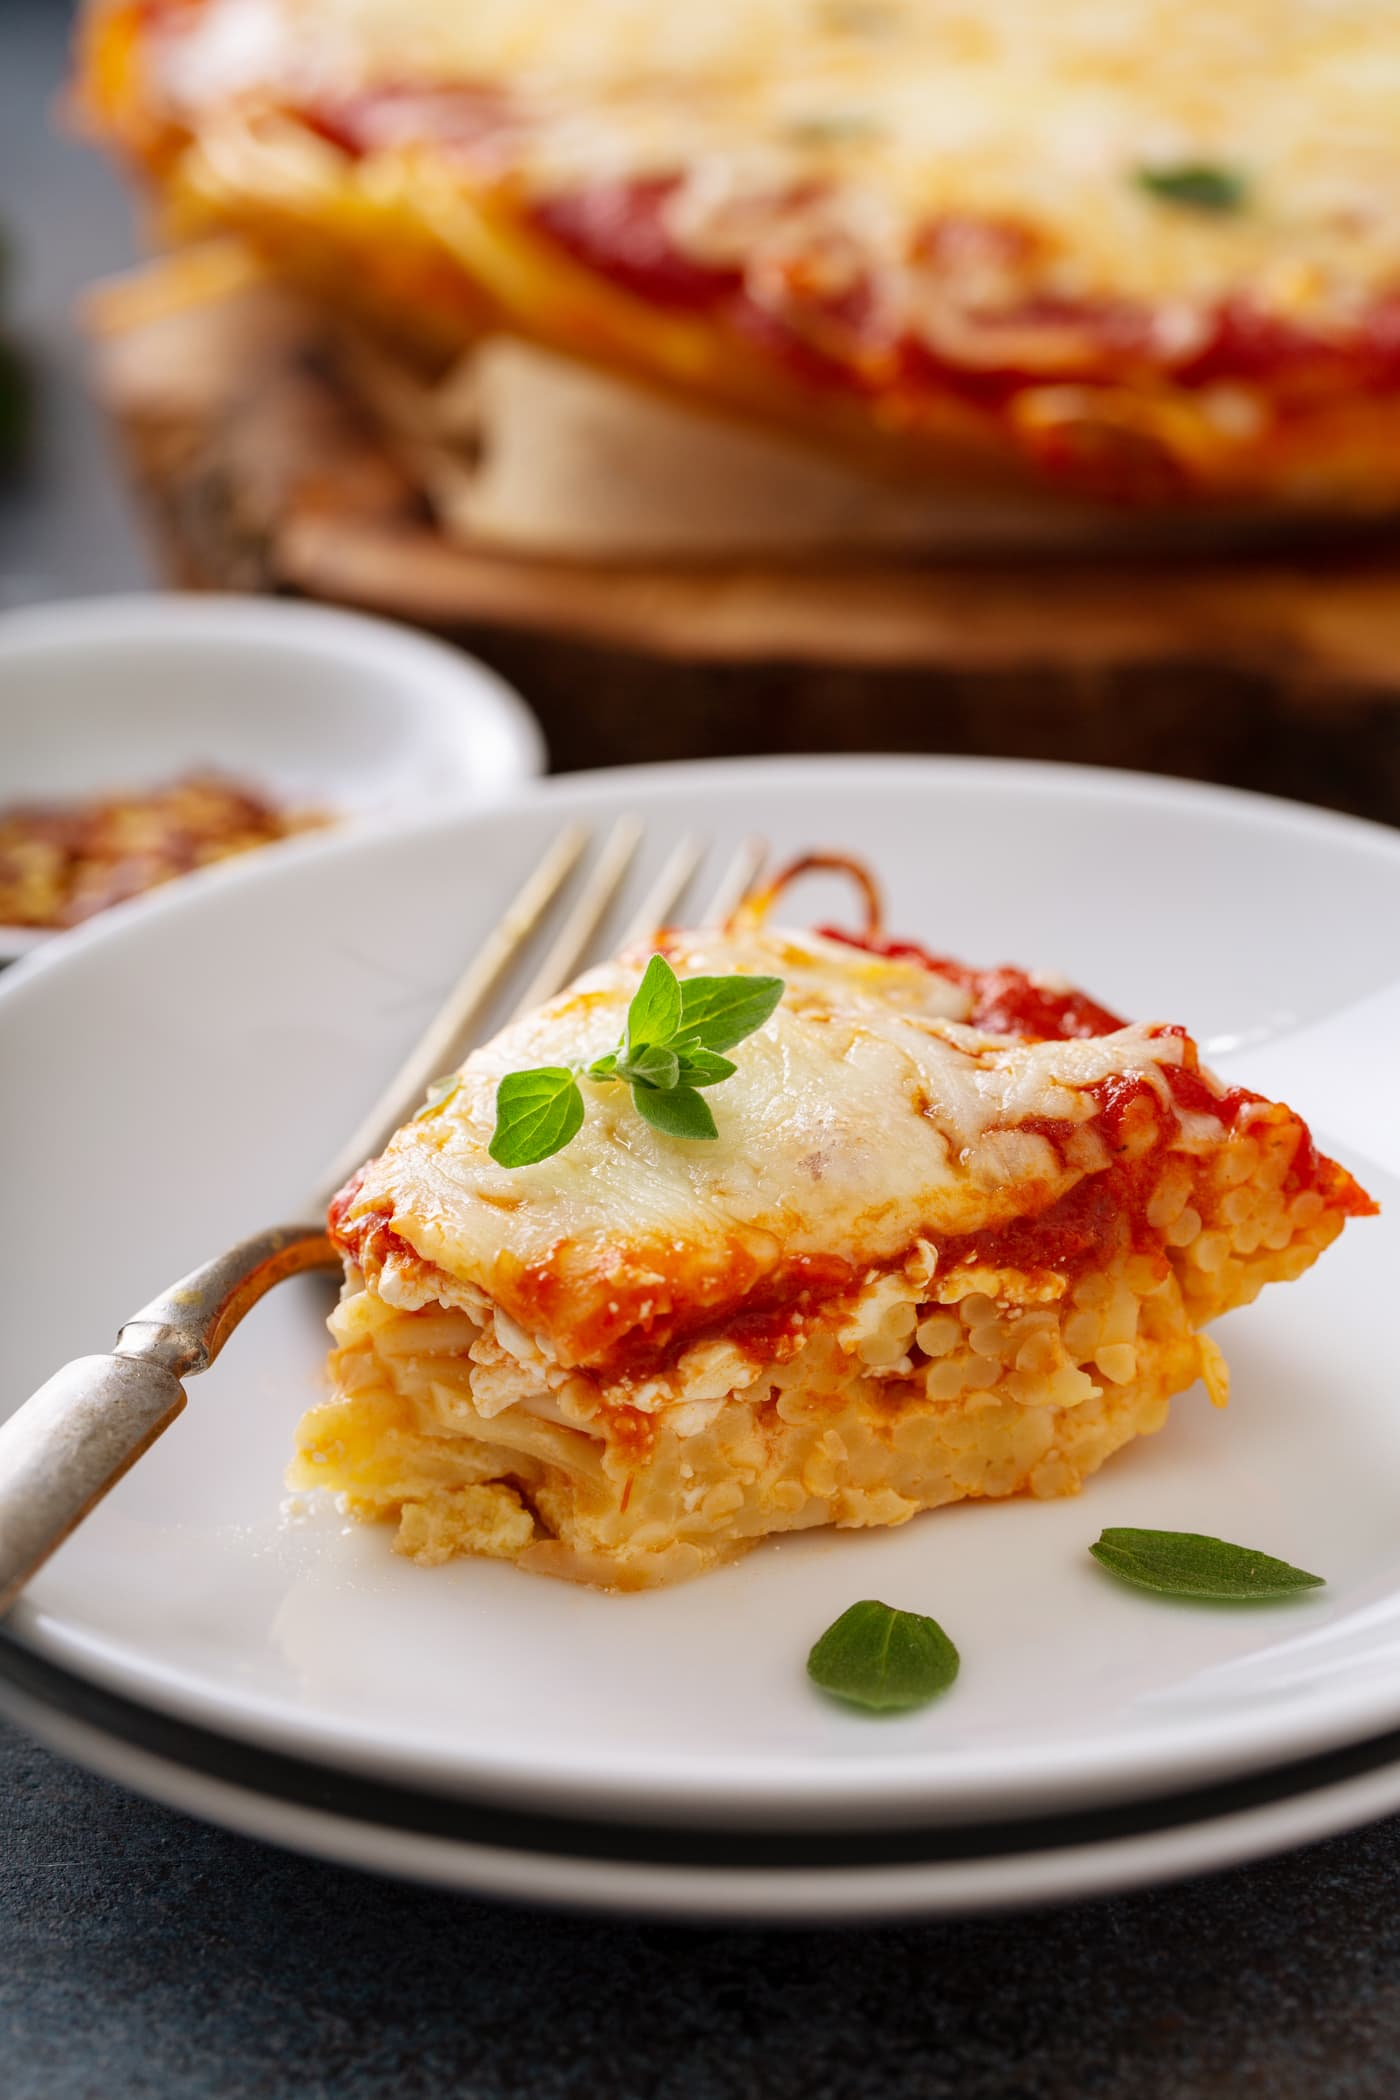 A slice of baked spaghetti pie on a white dinner plate. A fork is next to the spaghetti pie and a few basil leaves are scattered on the pie and the plate. A small container of red pepper flakes and the rest of the spaghetti pie are in the background.